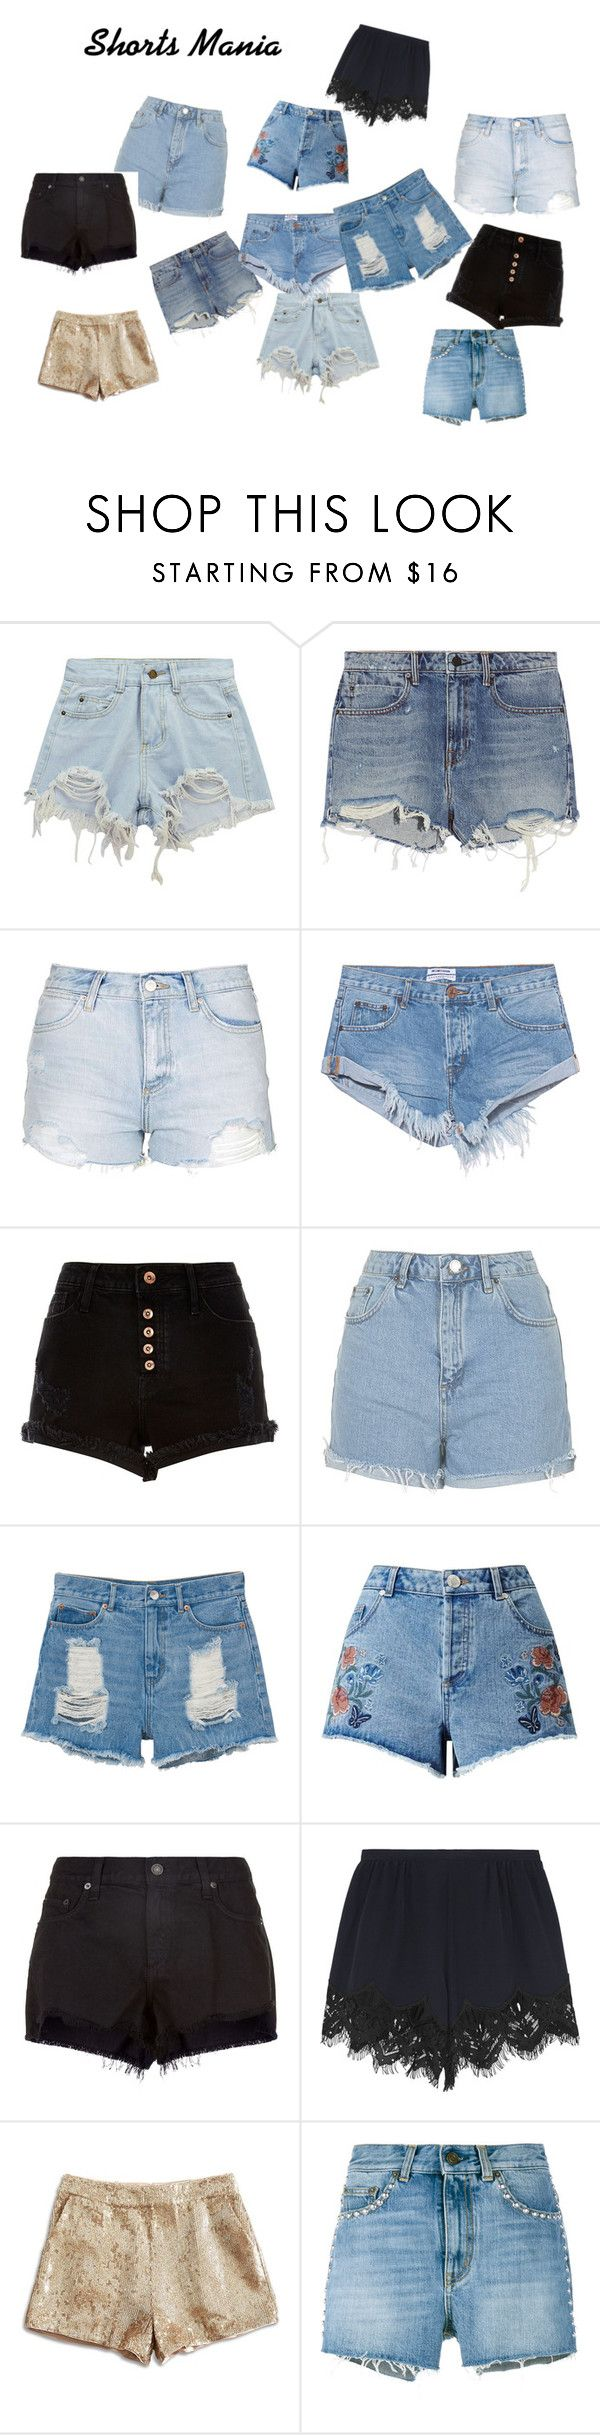 Shorts Mania by vas0an on Polyvore featuring Chloé, Yves Saint Laurent, Alexander Wang, Lucky Brand, rag & bone, One Teaspoon, Miss Selfridge, River Island, Topshop and Monki